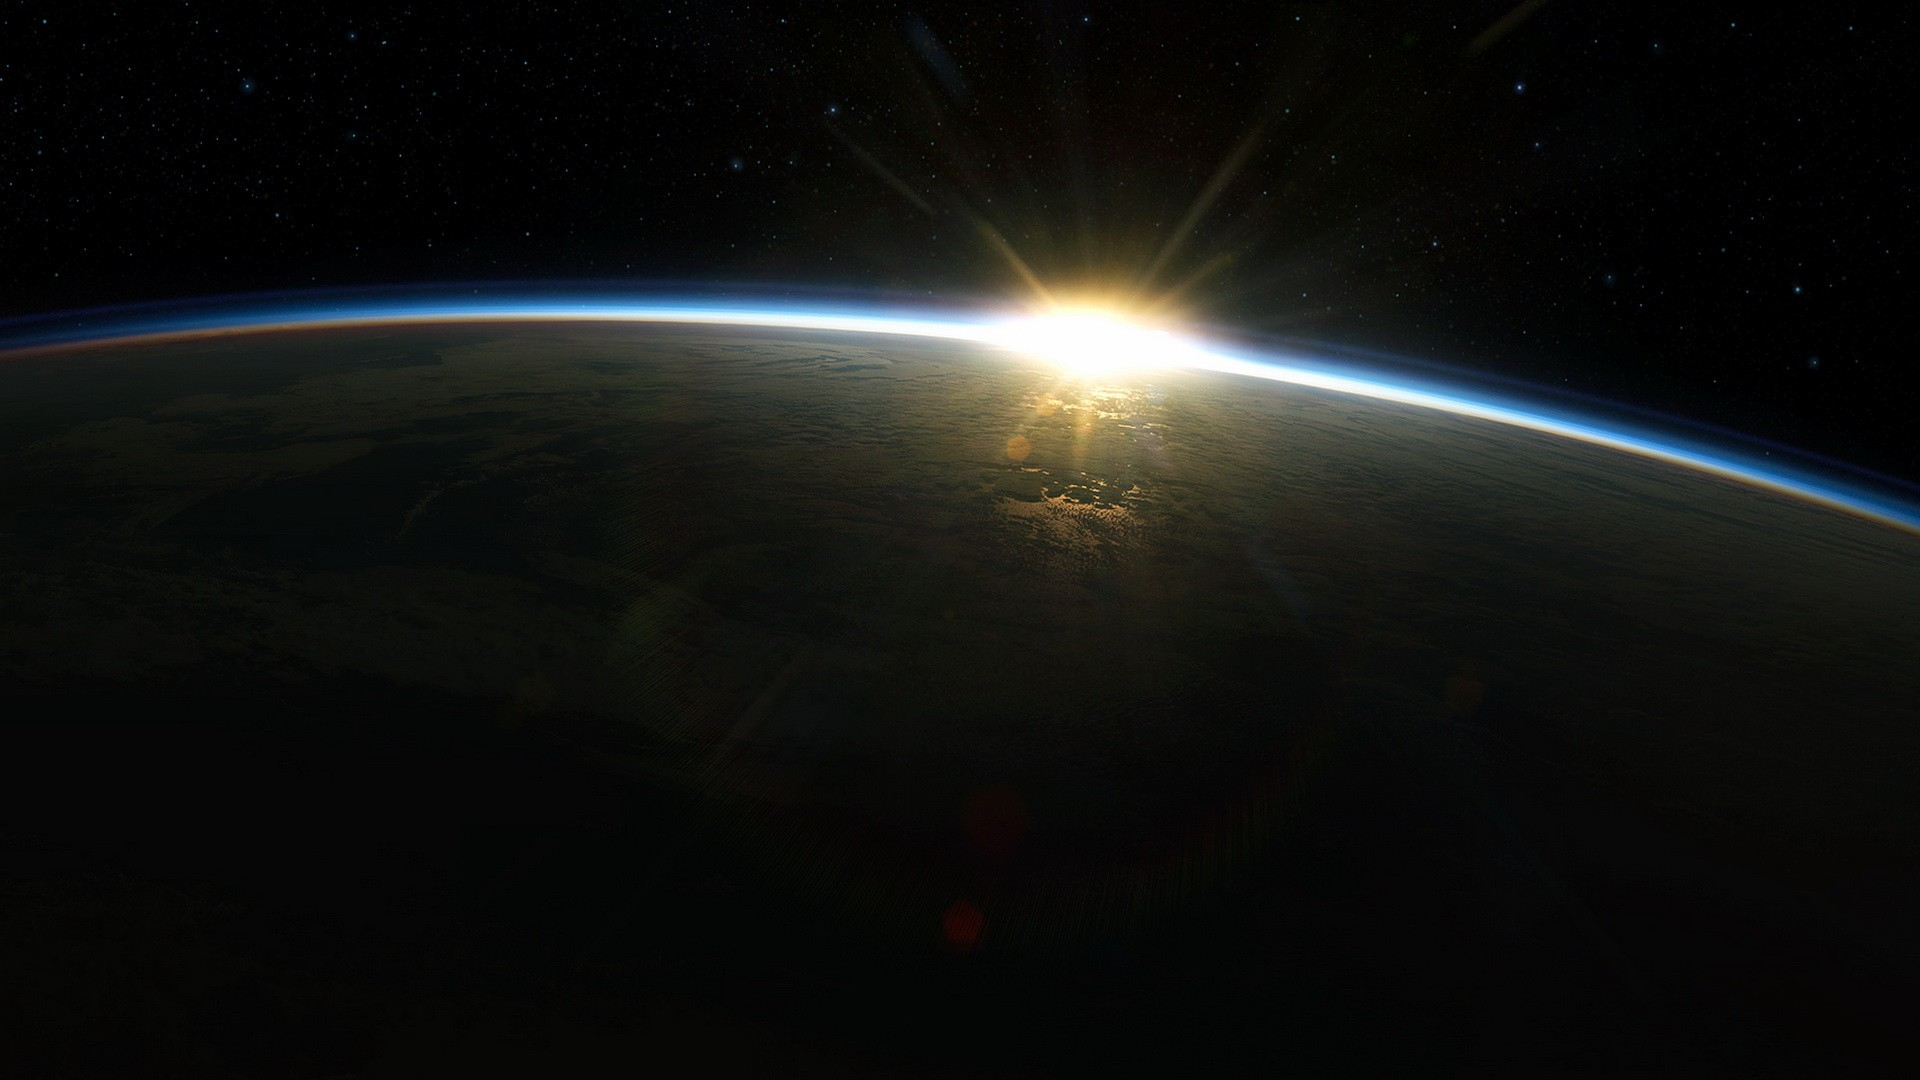 Earth from Space Wallpaper 1920x1080 - WallpaperSafari